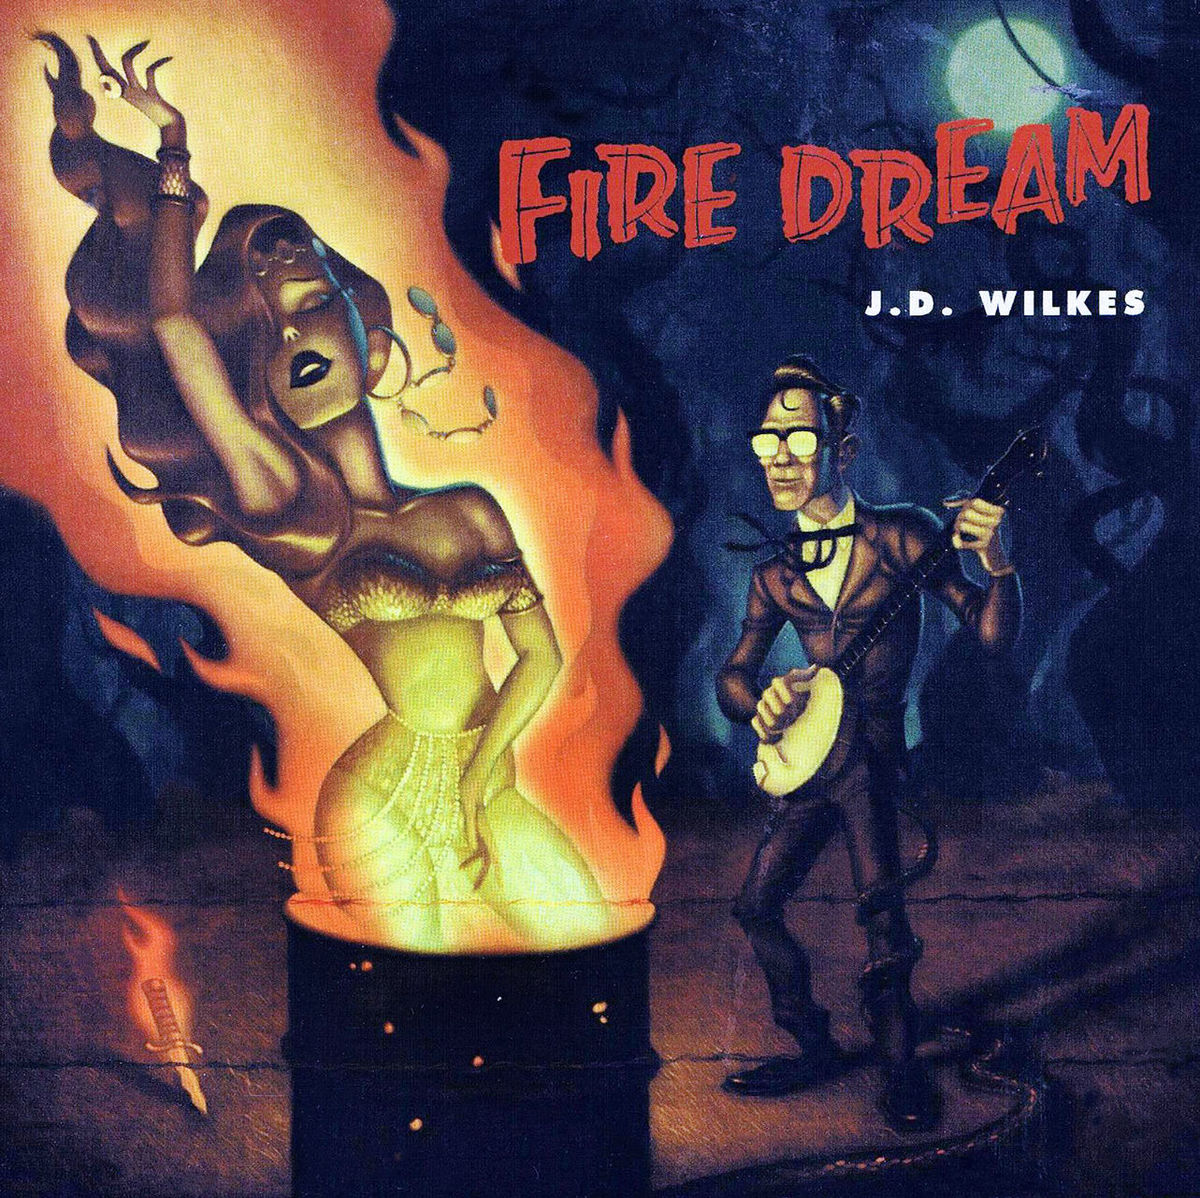 J.D. Wilkes, Fire Dream - cover art